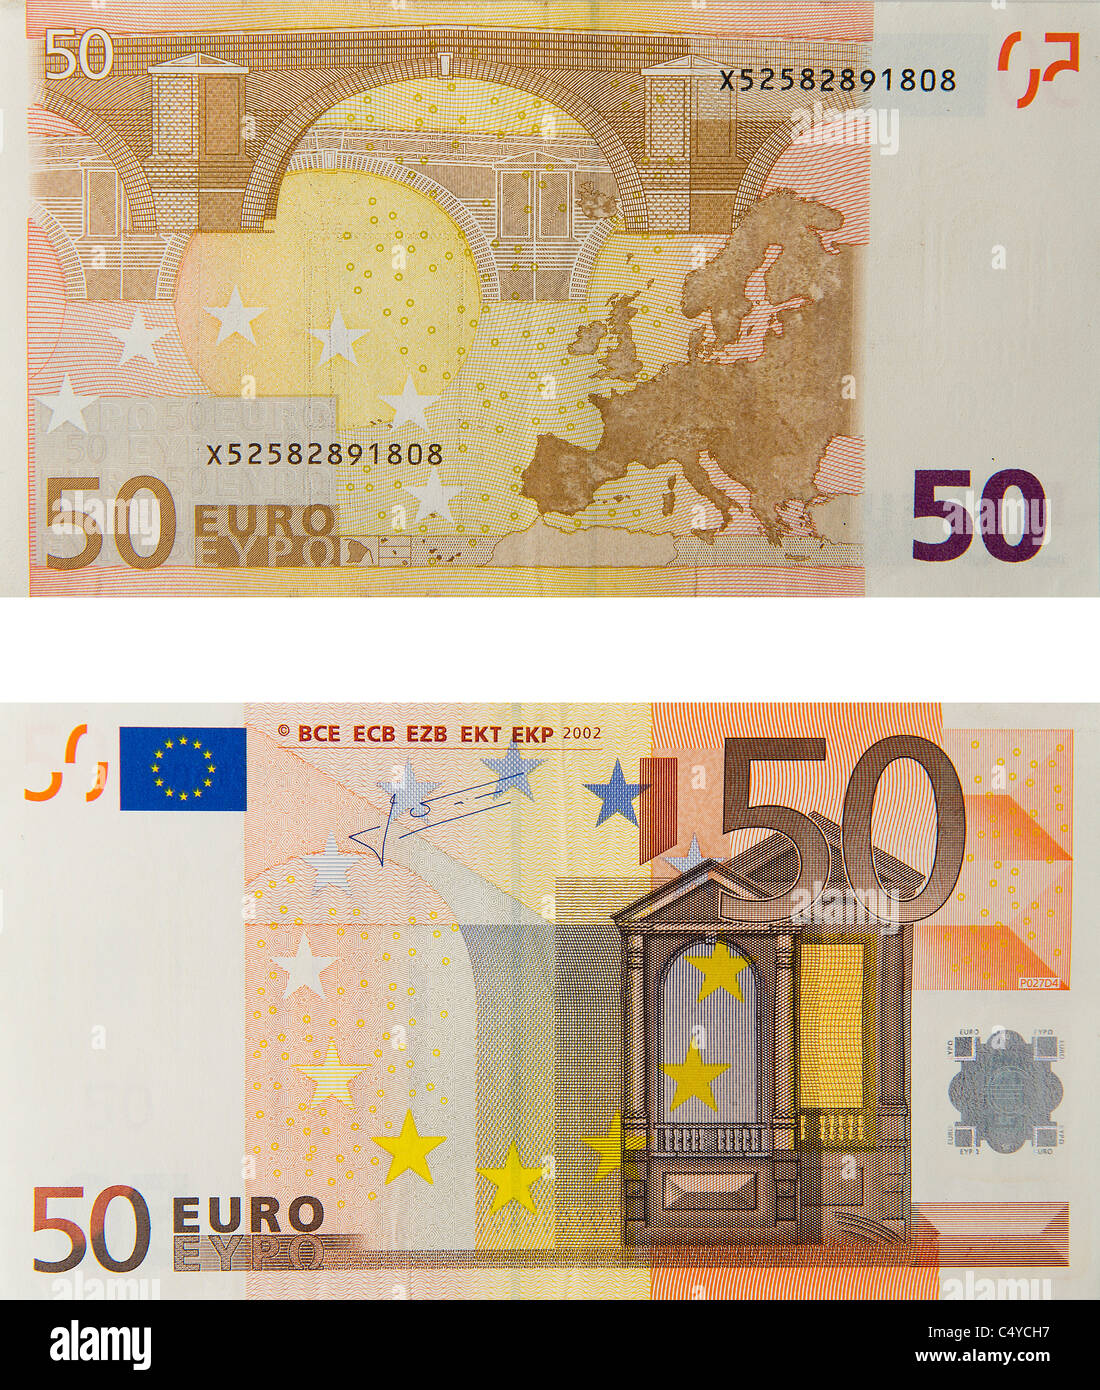 50 fifty euro note euros notes bill - Stock Image